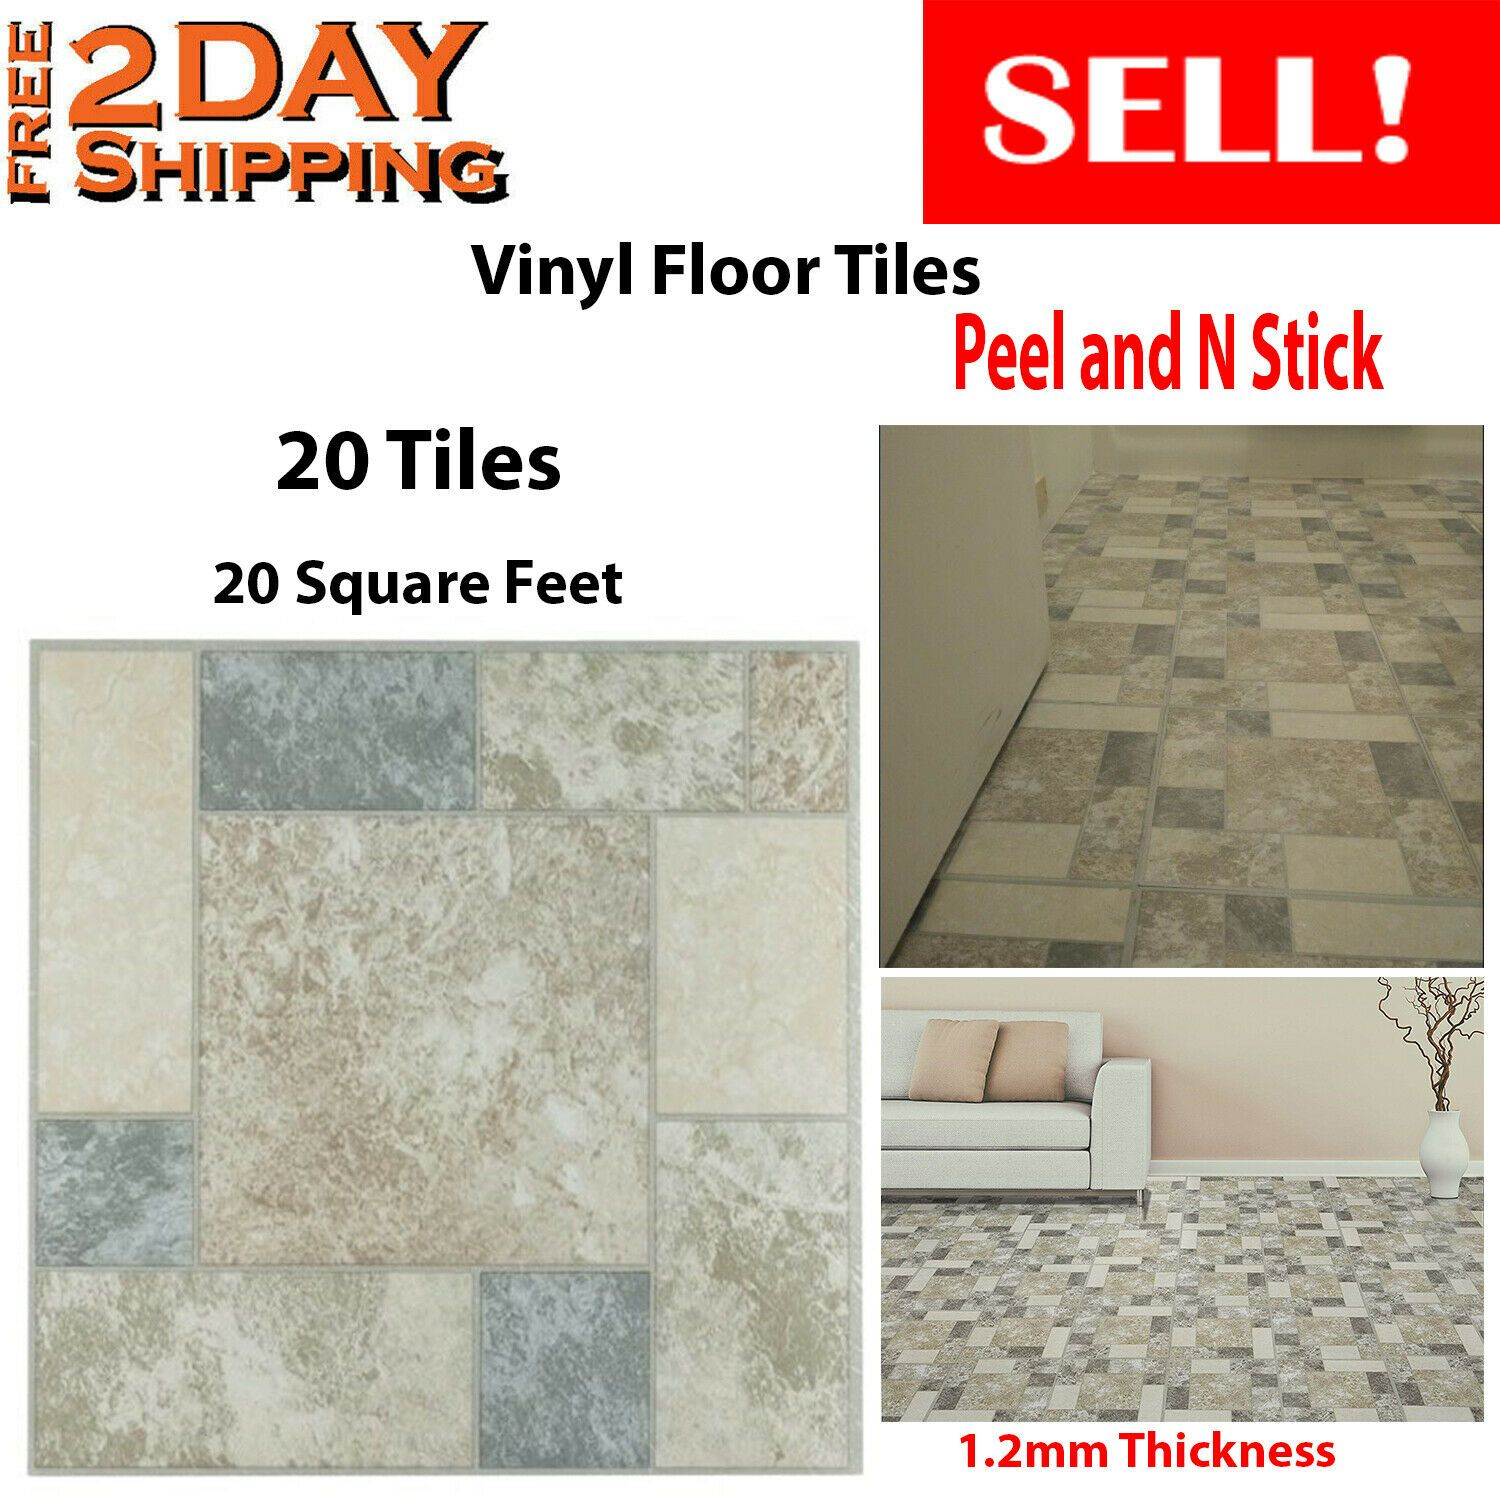 Diy Vinyl Floor Tiles 20 Peel And N Stick Mat Self Adhesive Vinyl Flooring Tile Vinyl Flooring Ideas O Vinyl Flooring Vinyl Flooring Installation Flooring